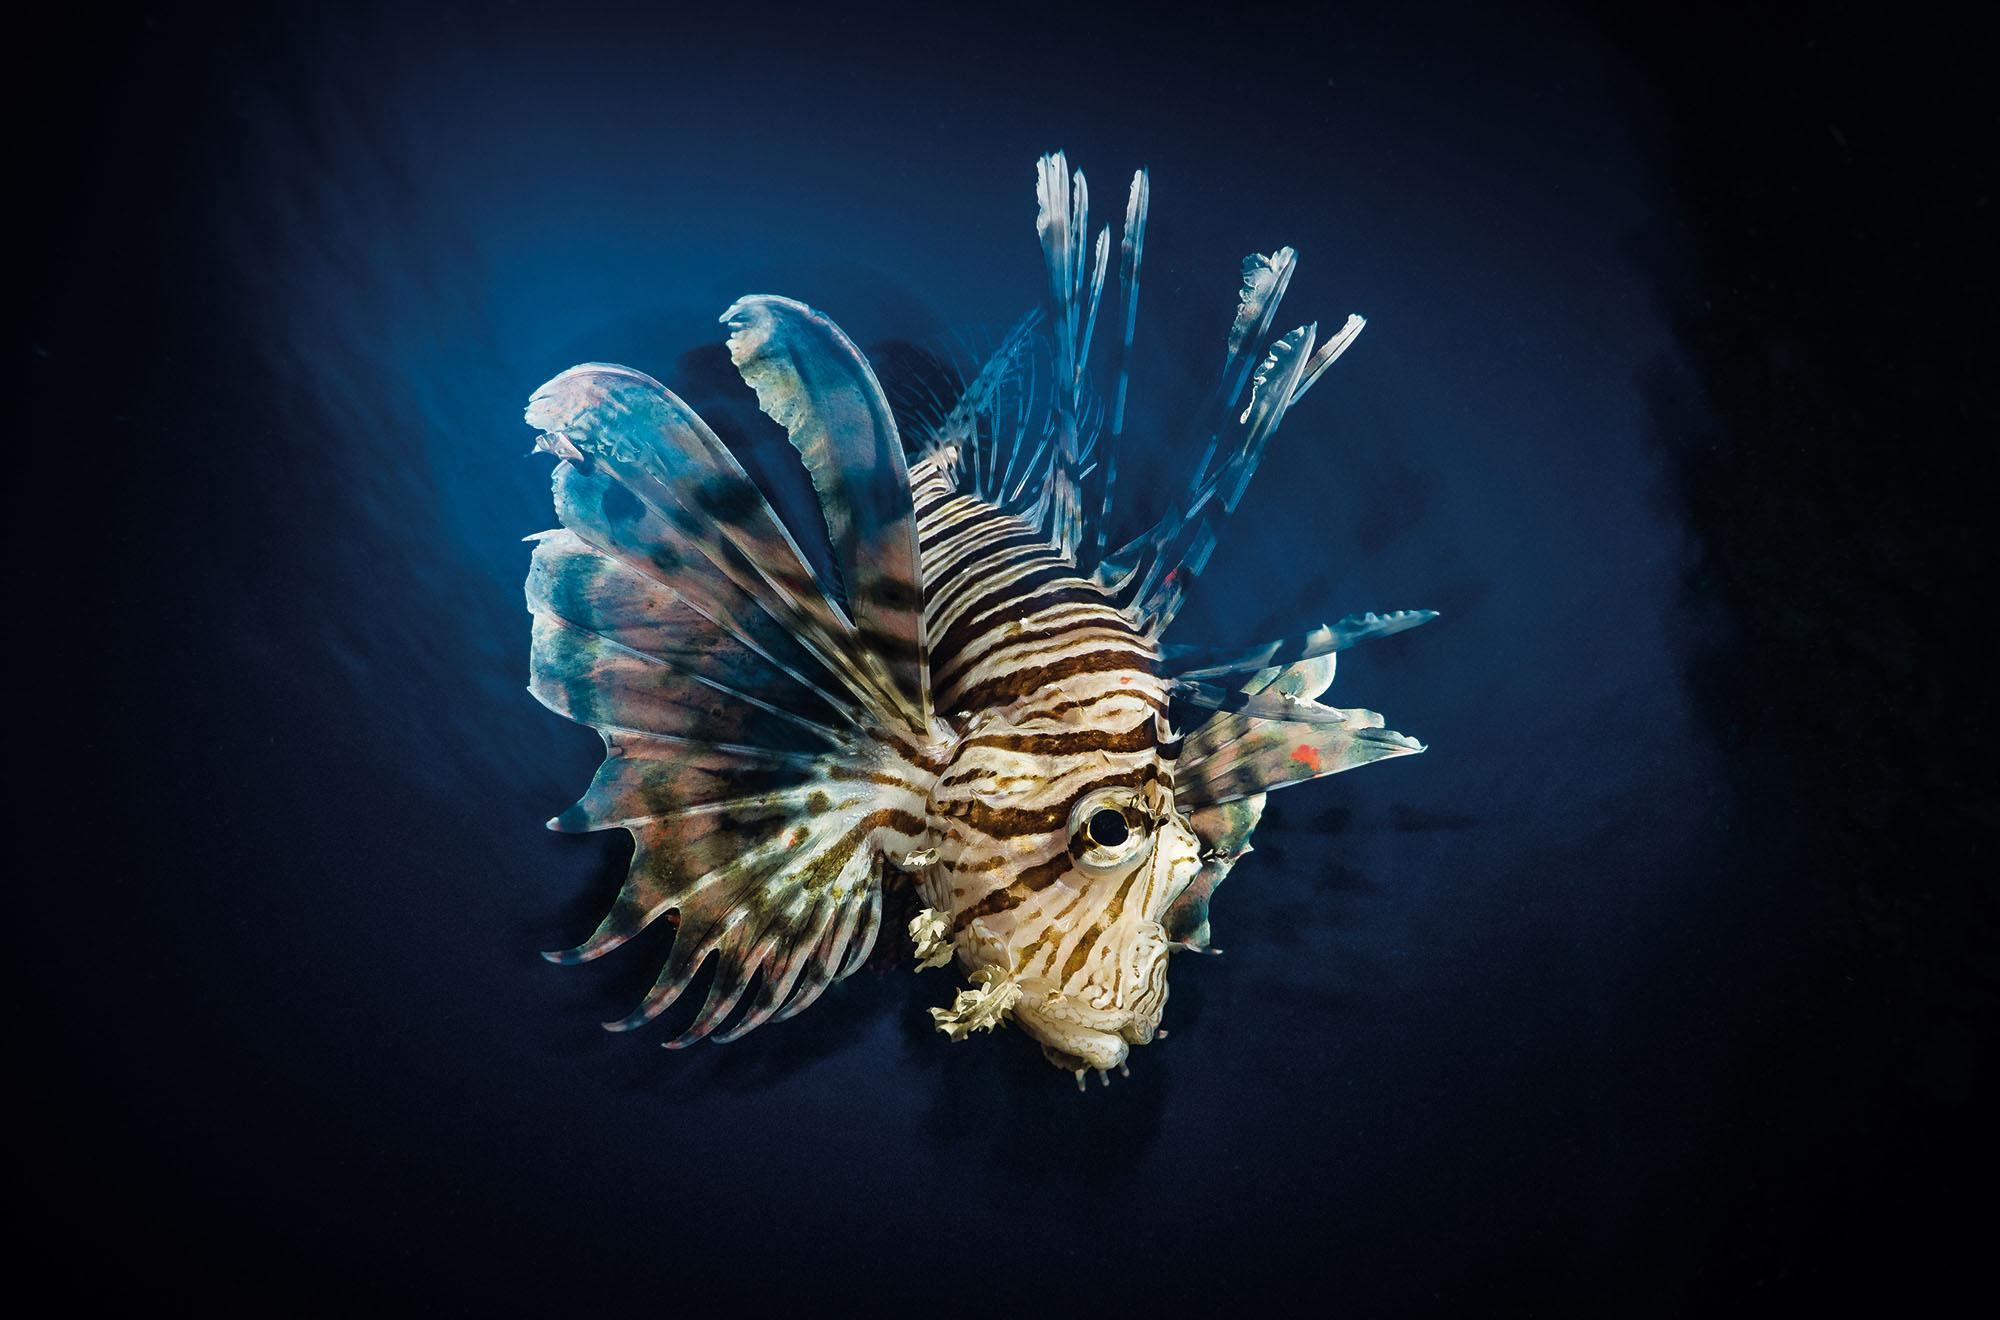 LionFish - Photographs by Paul Duxfield